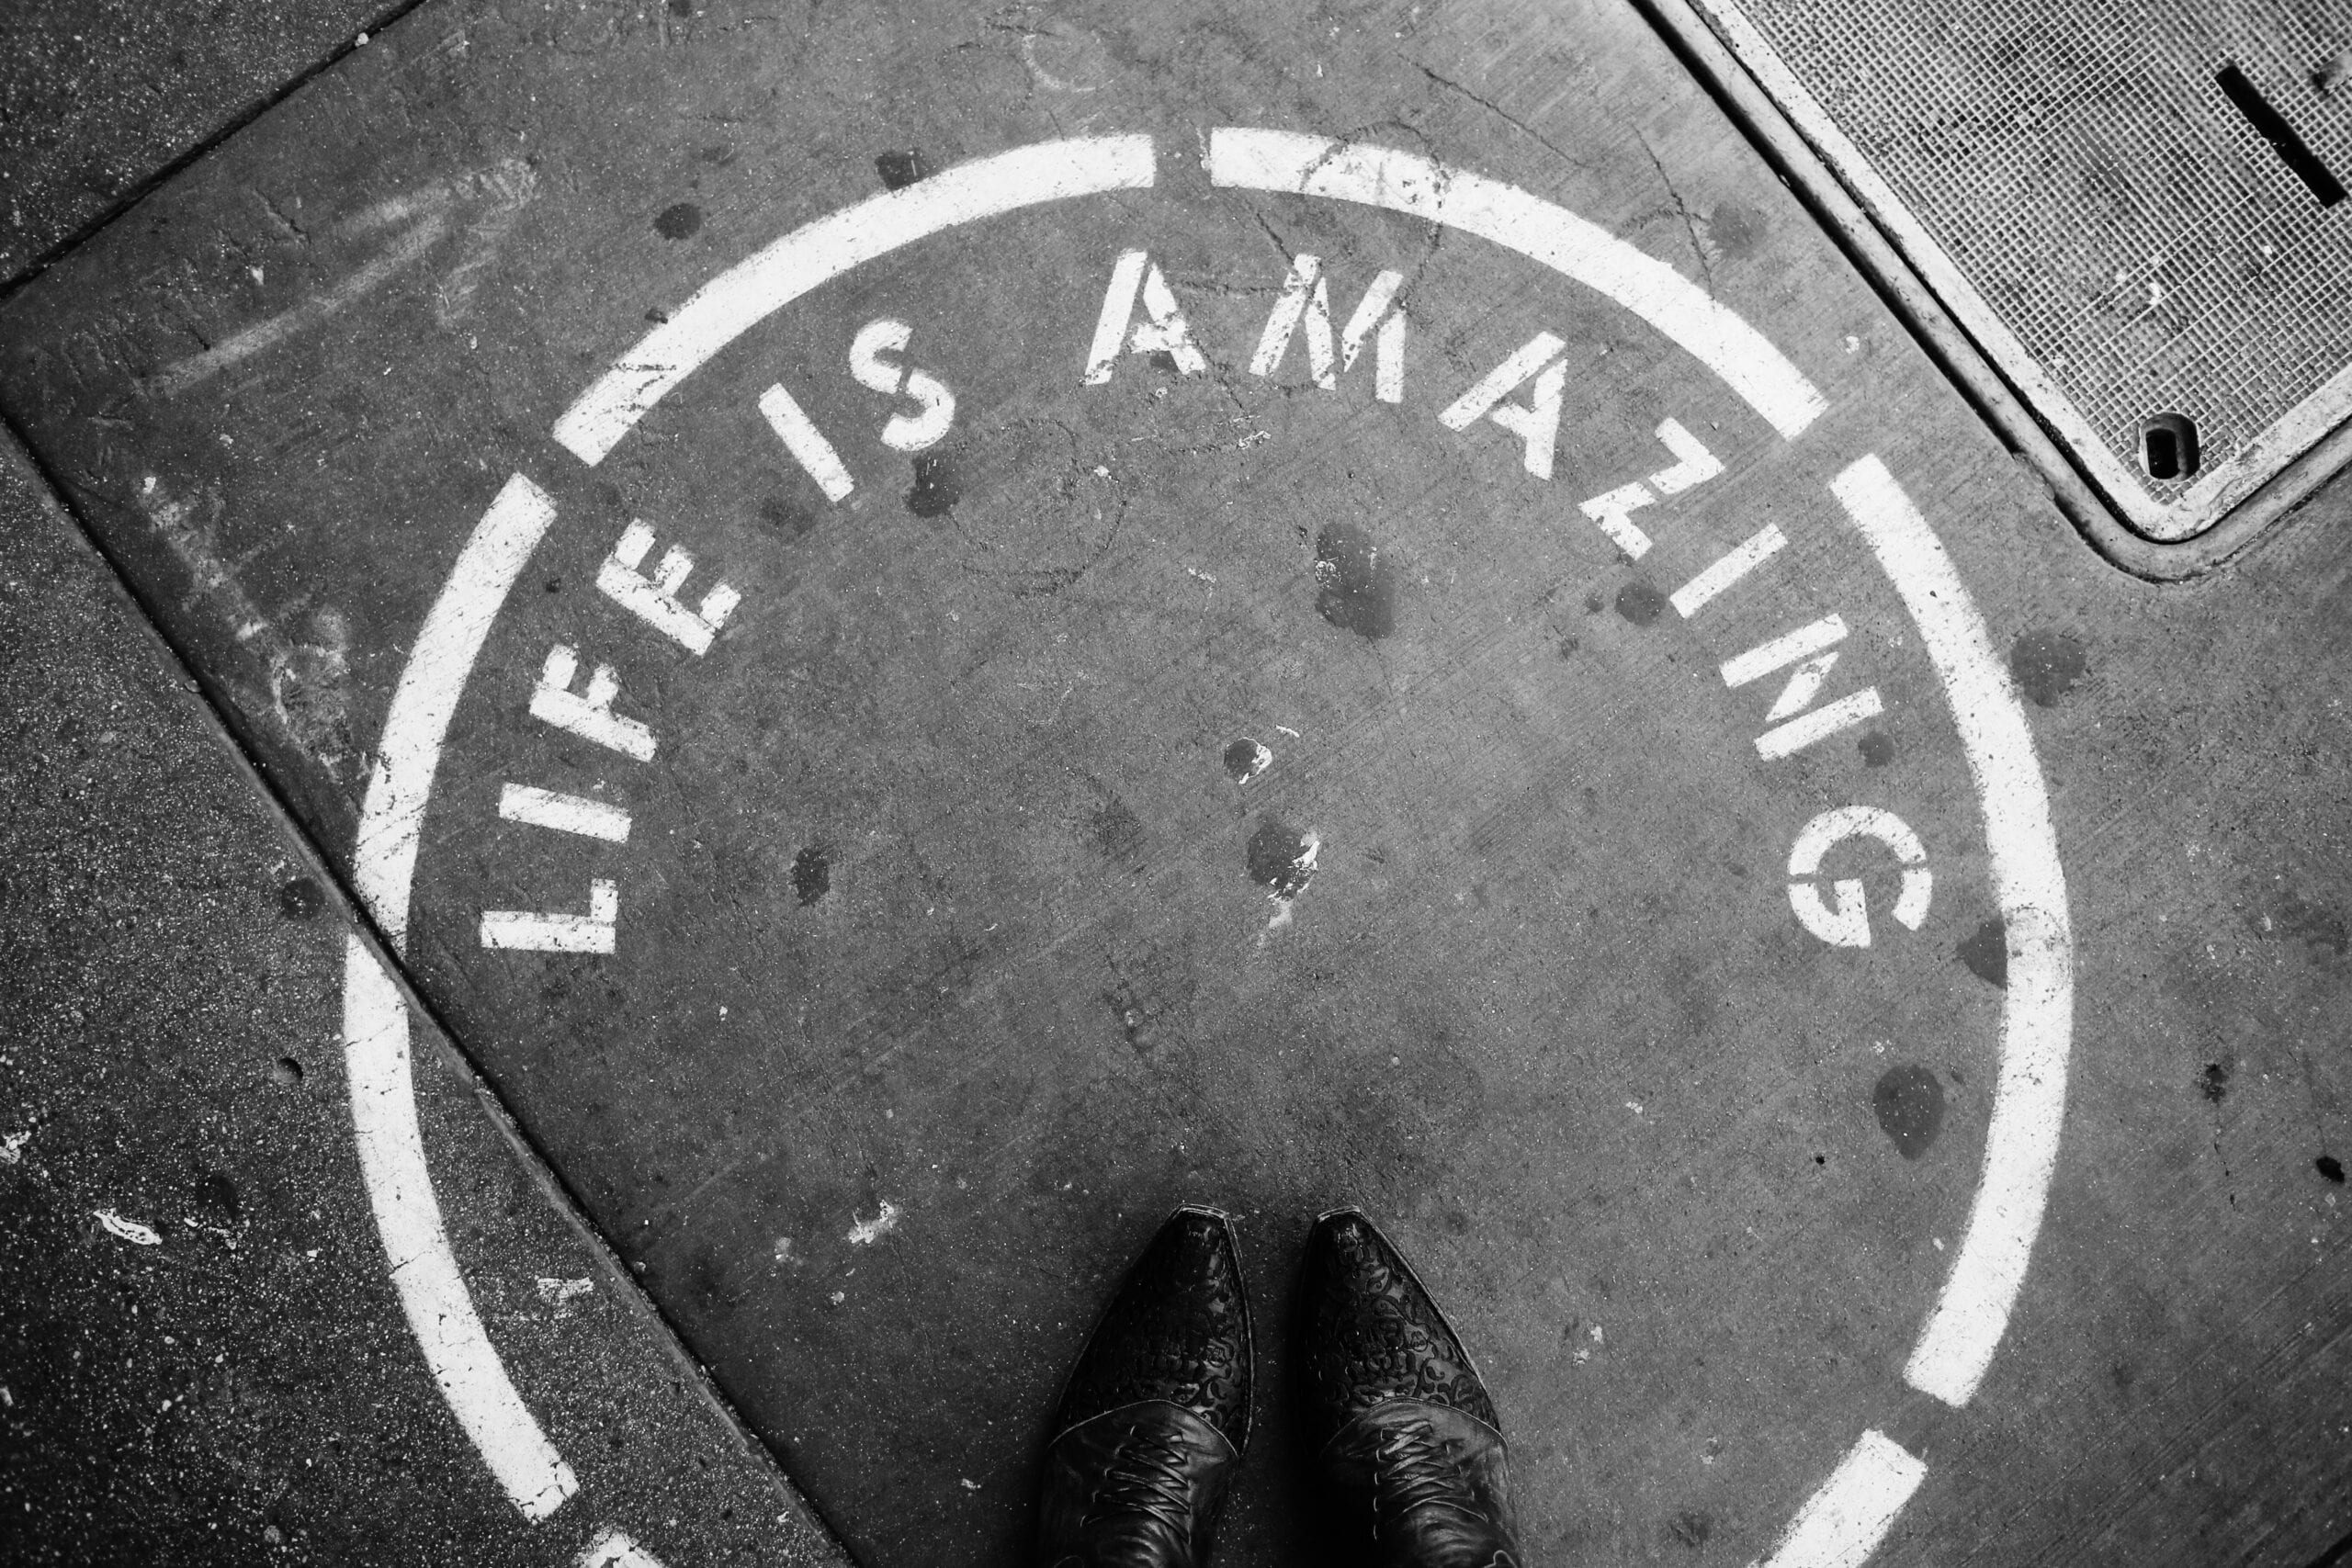 person wearing leather shoes stepping on Life is Amazing circle texts